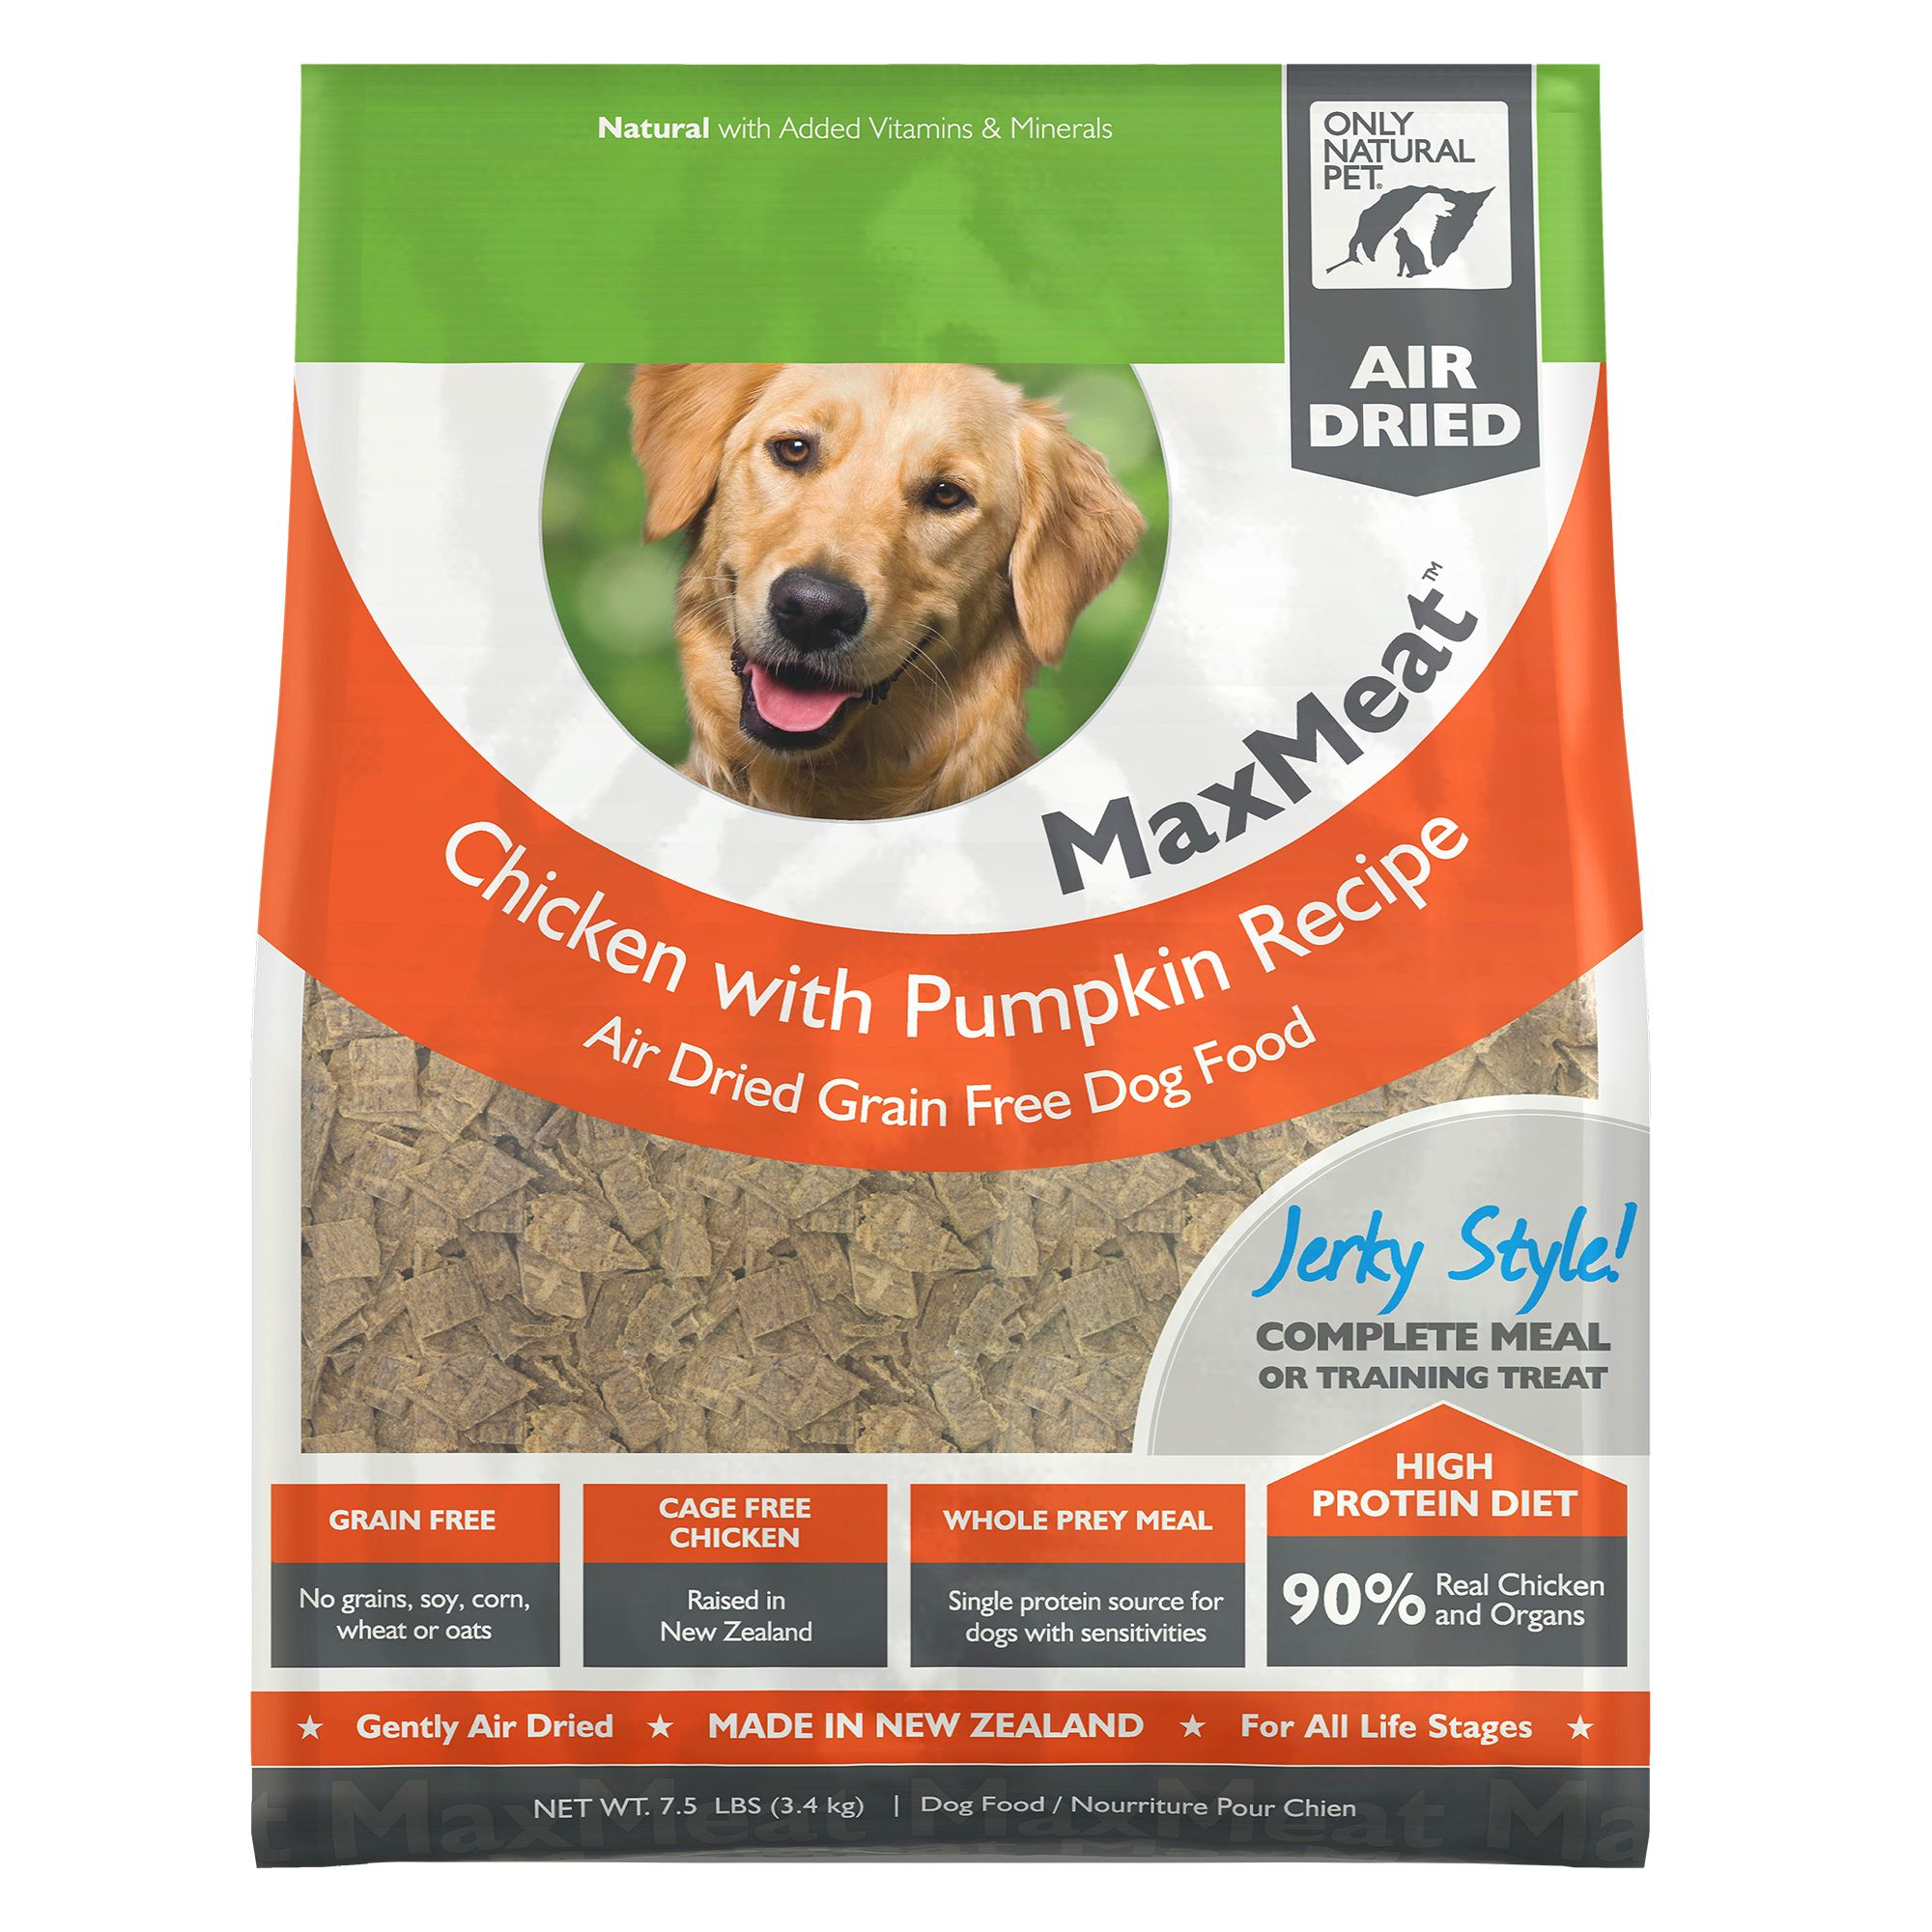 Only Natural Pet MaxMeat Dog Food - Grain Free, Air Dried, Chicken size: 7.5 Lb, Chicken with Pumpkin & Parsley, Soft Jerky-Style Morsel, All Life Stages 5239107